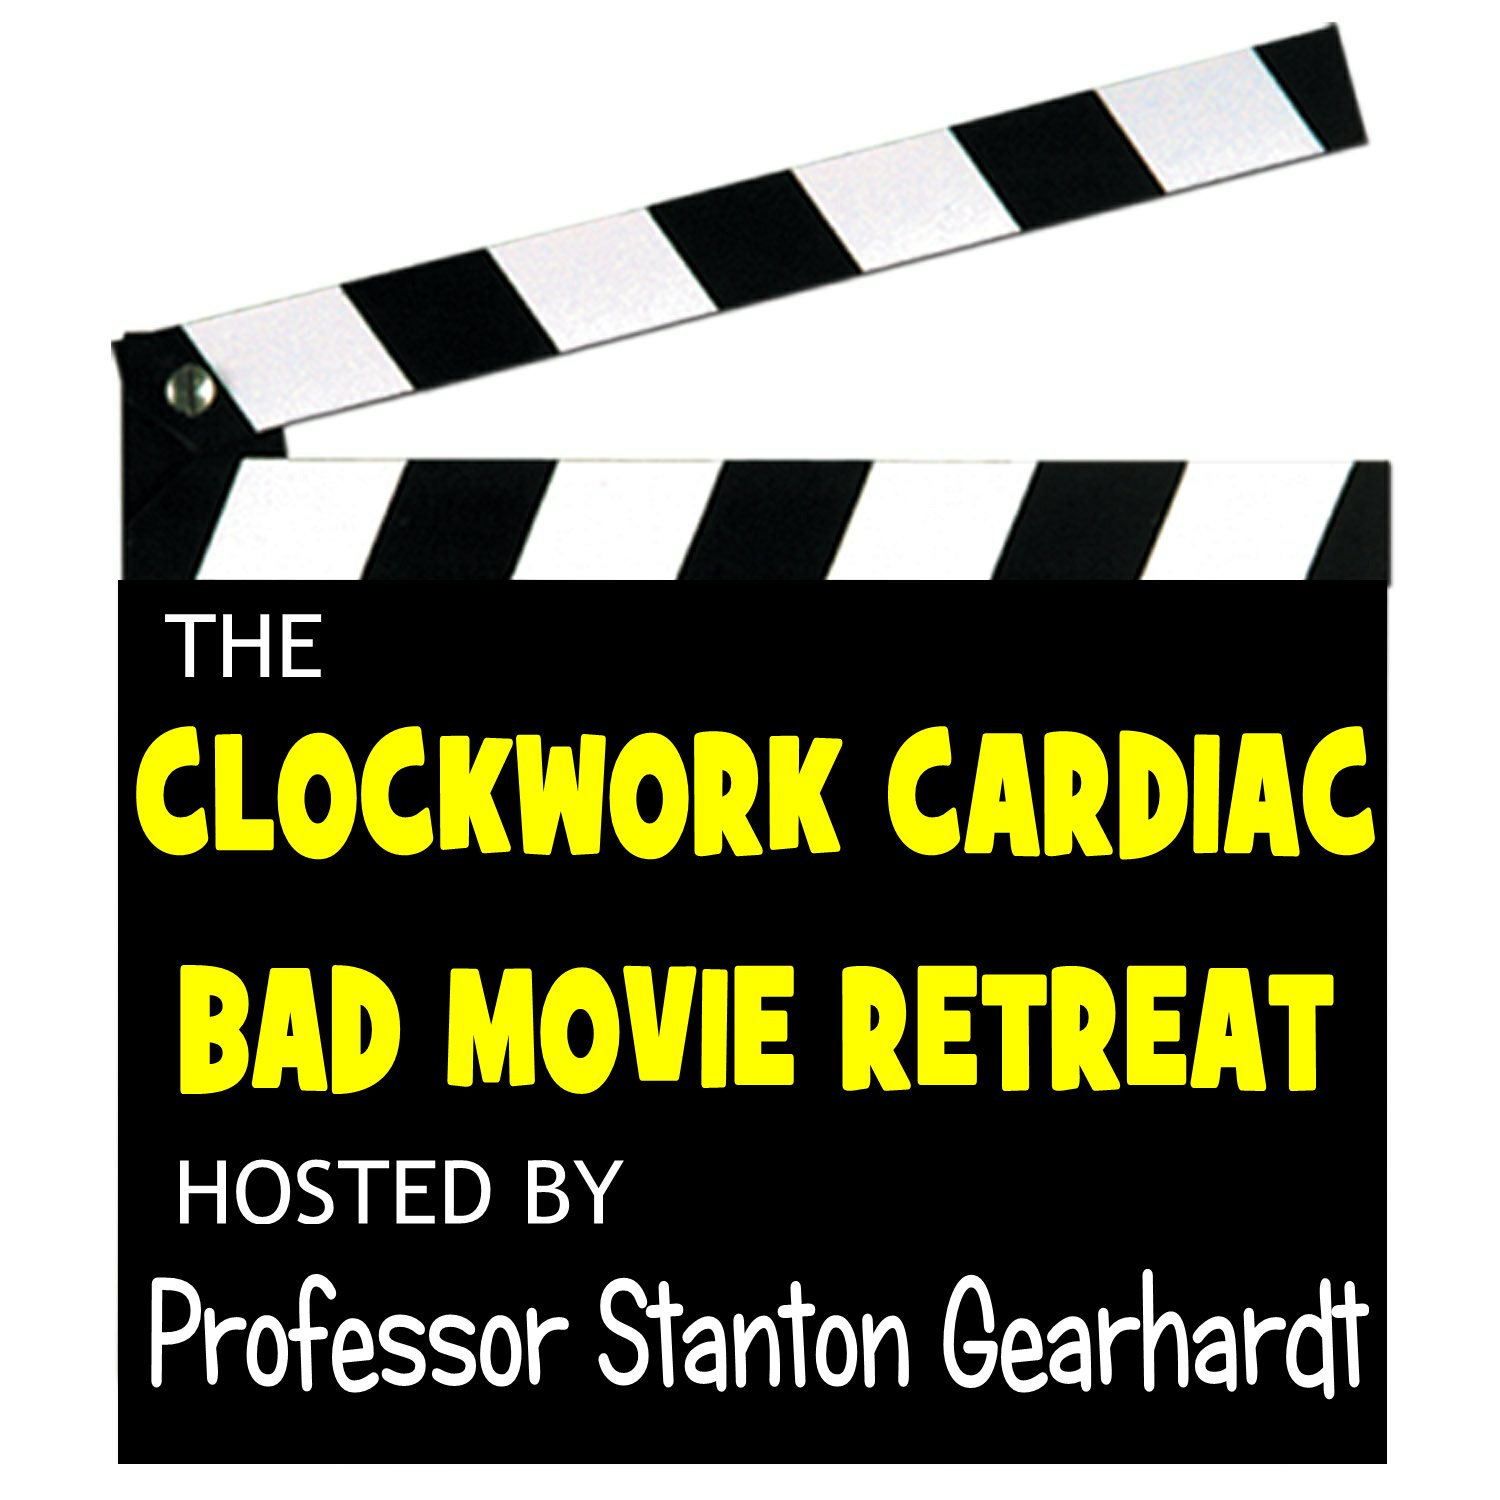 CLOCKWORK CARDIAC BAD MOVIE RETREAT